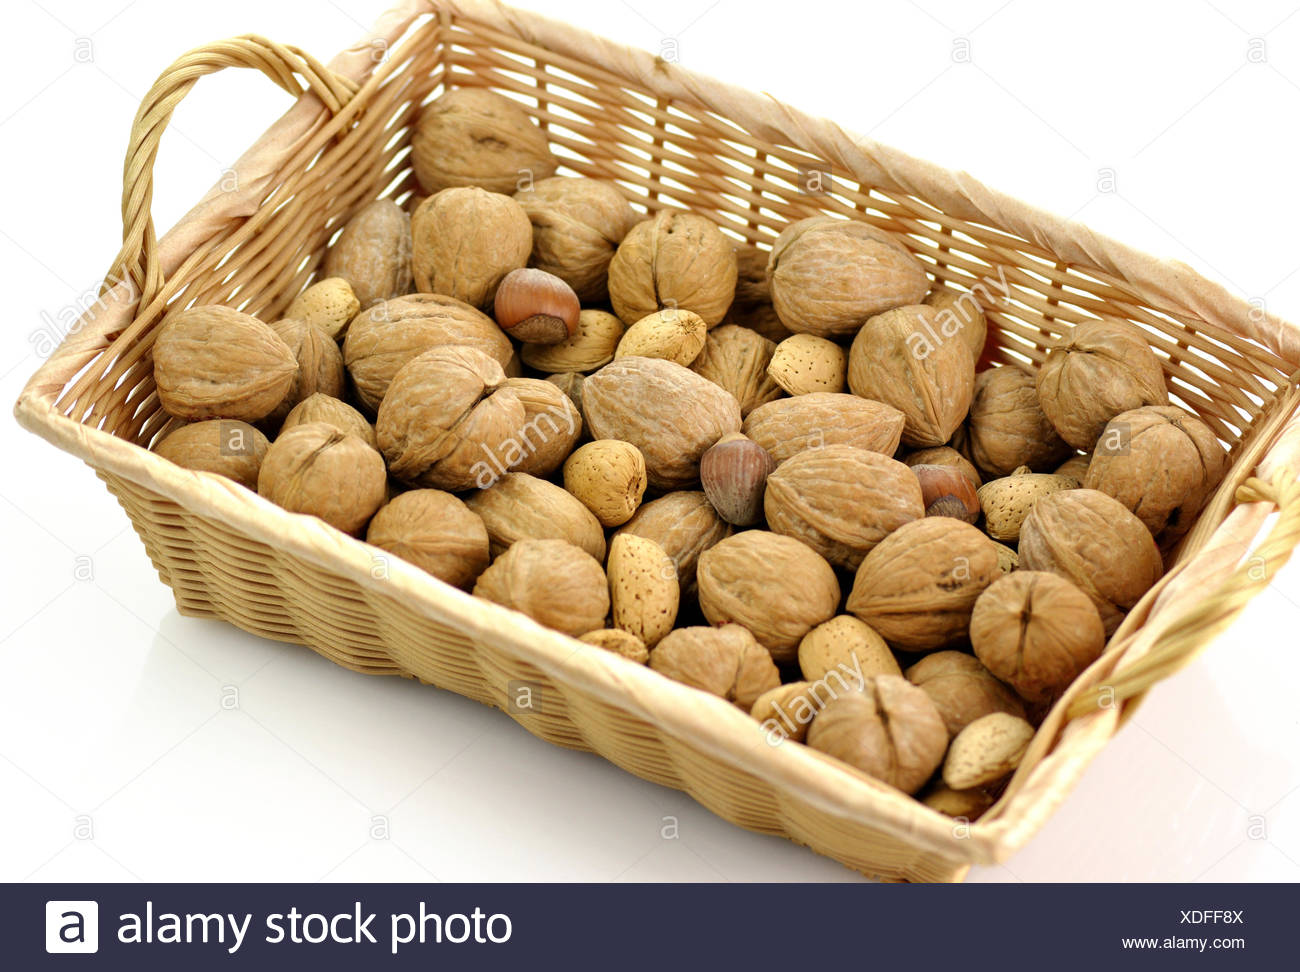 Mixed nuts in a basket - Stock Image